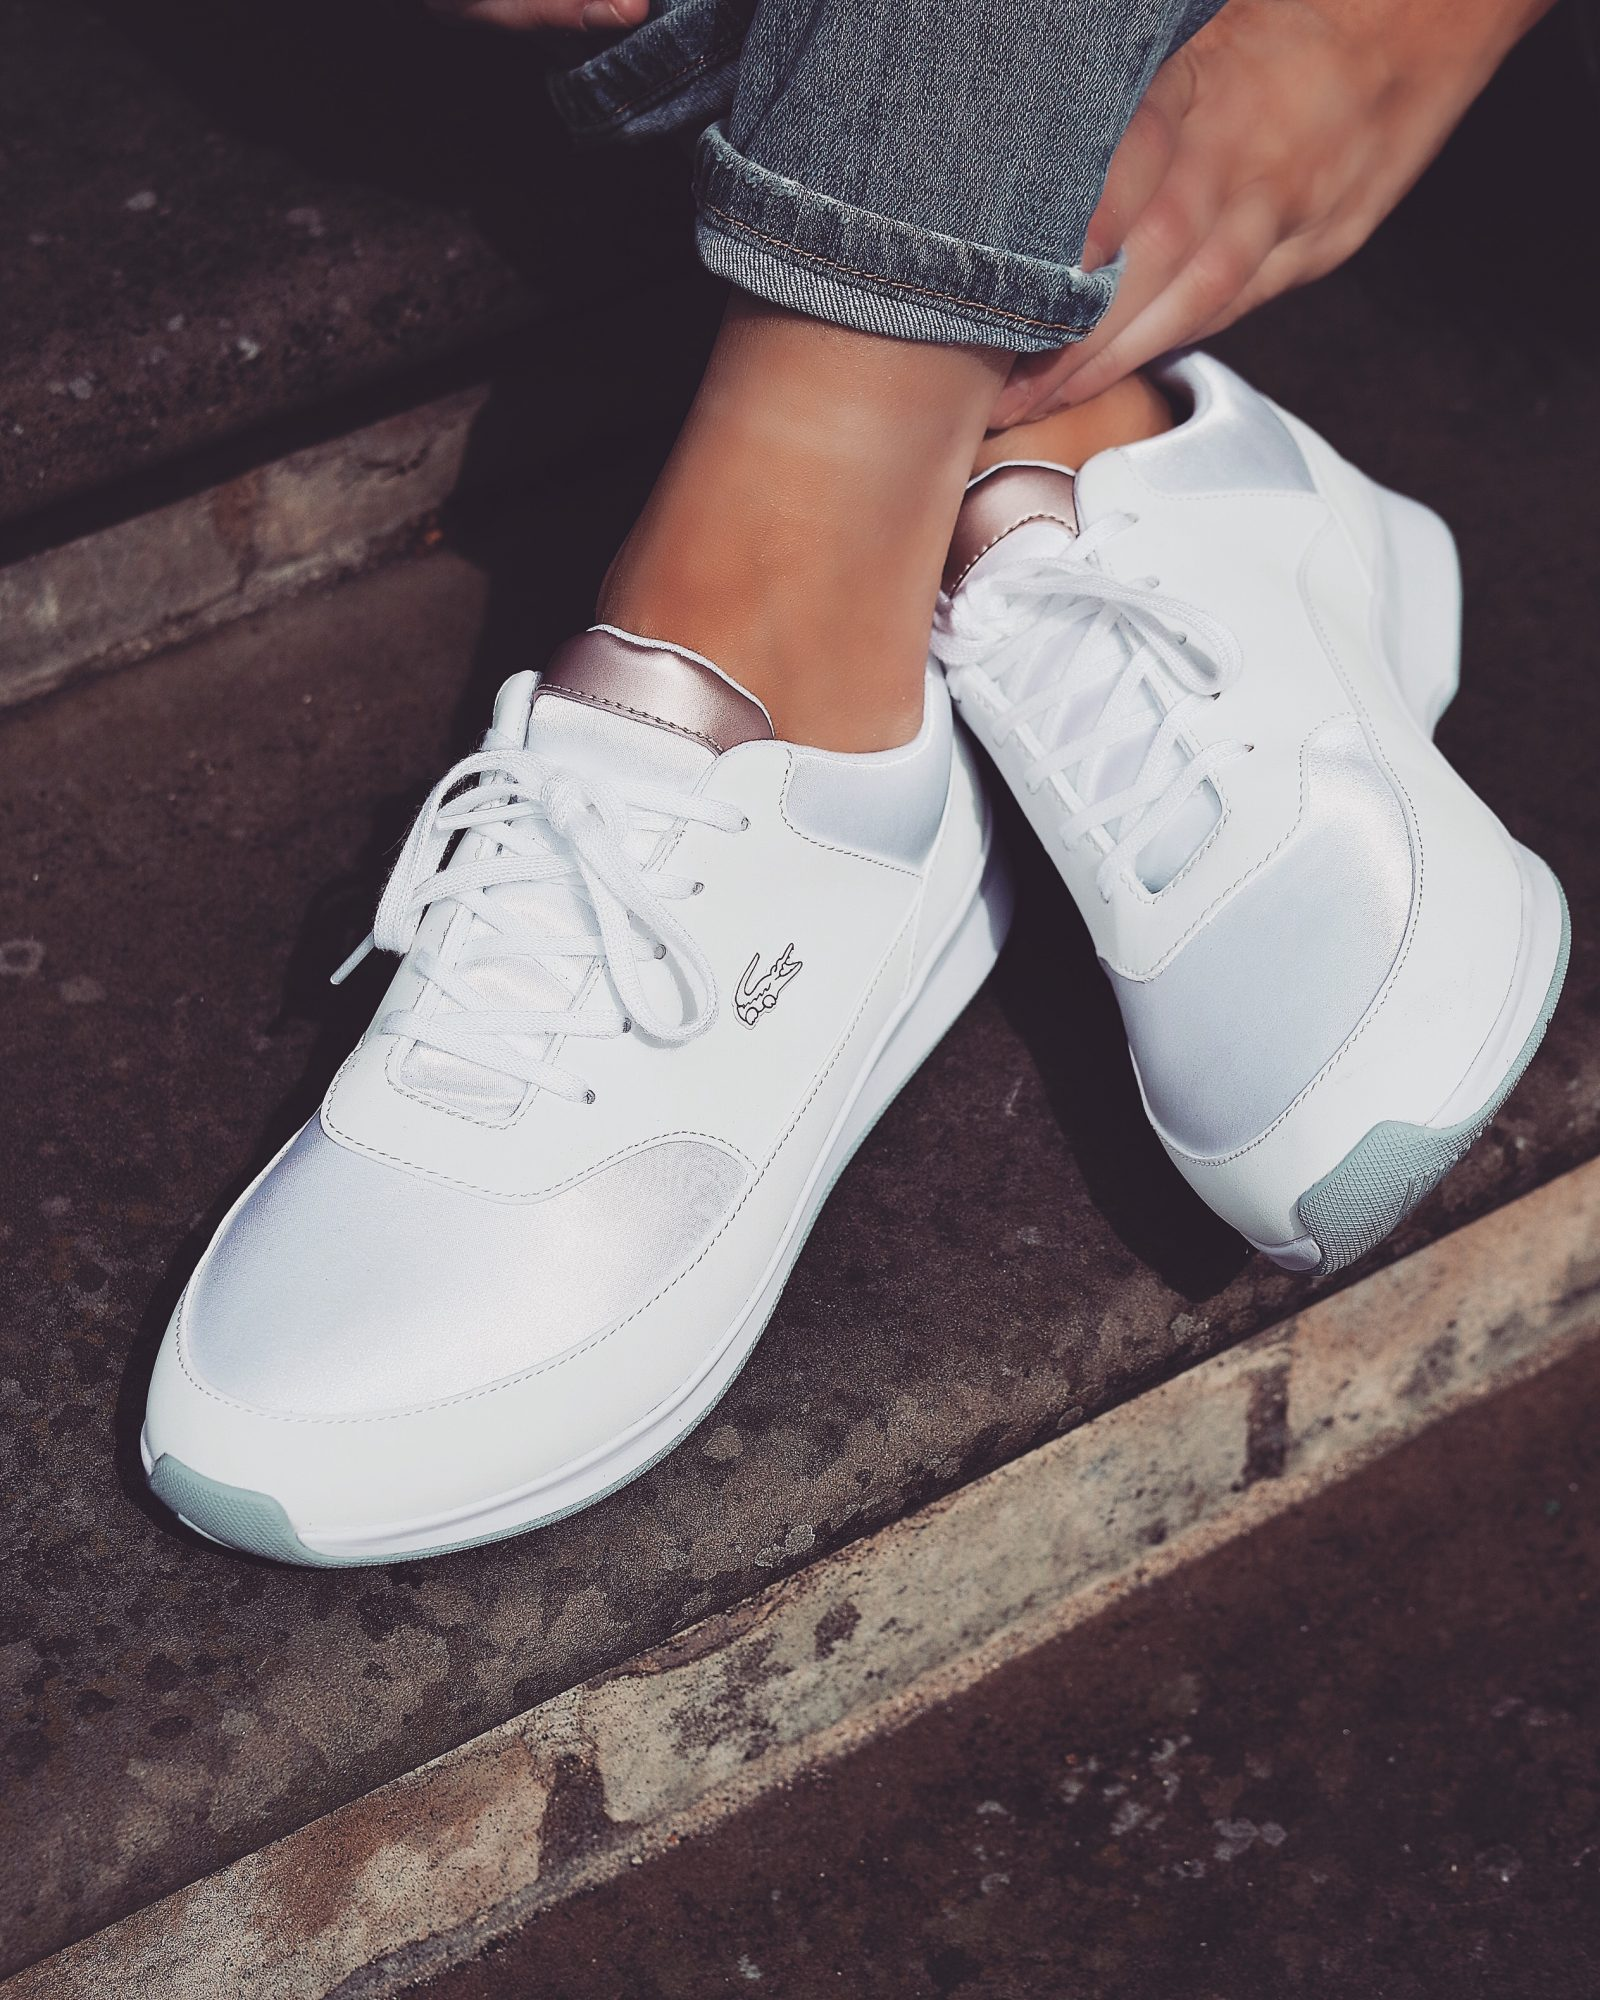 Lacoste Chaumont Lace 317 - Made For Her Collection